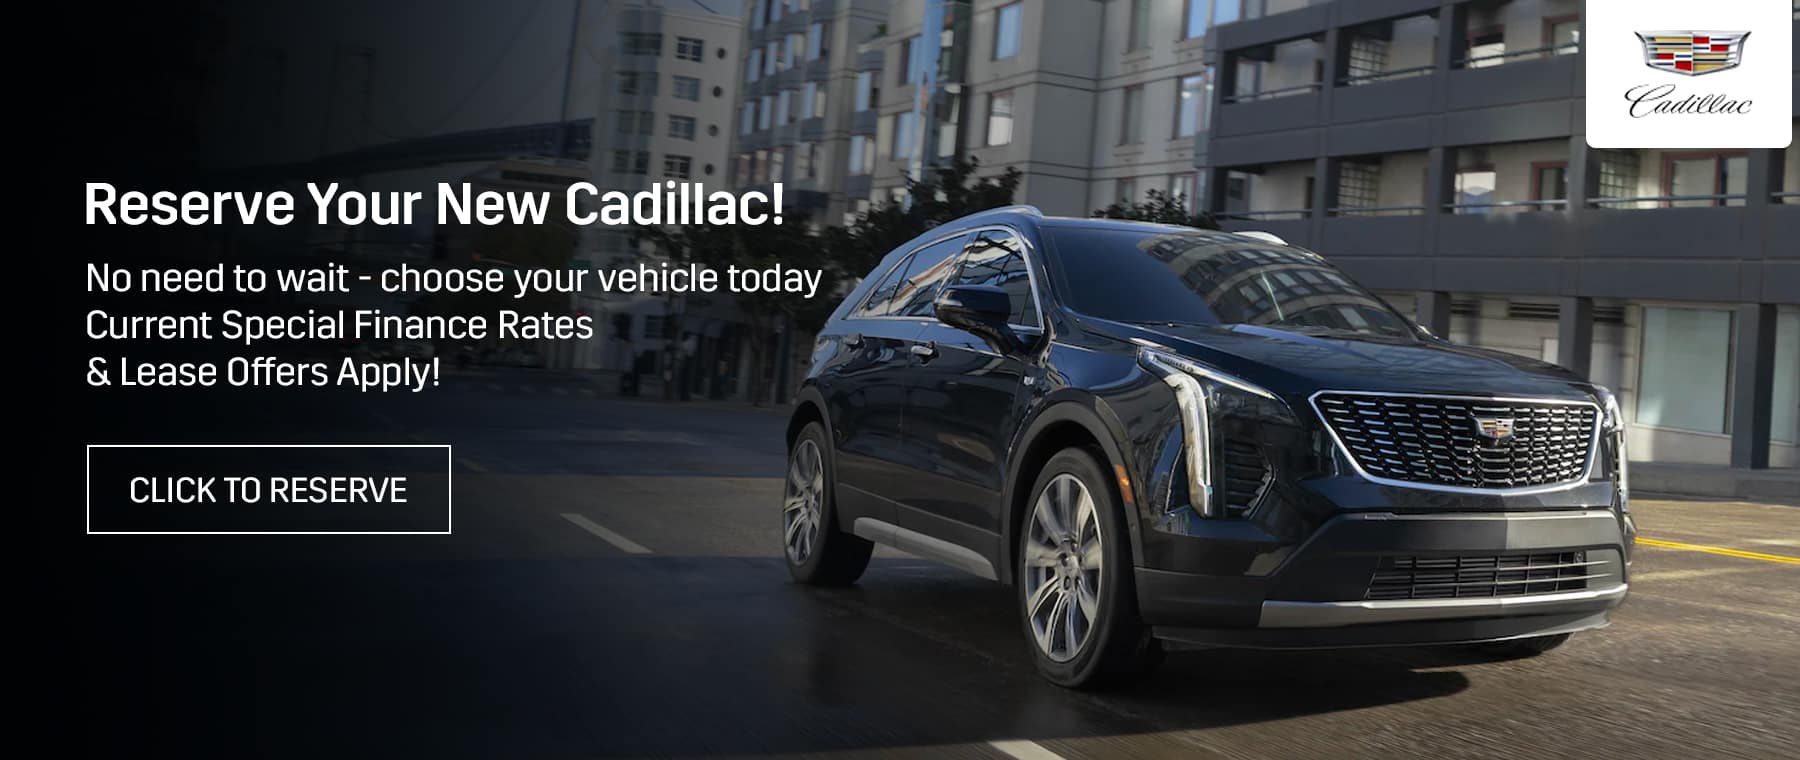 Reserve Your New Cadillac! No need to wait - choose your vehicle today